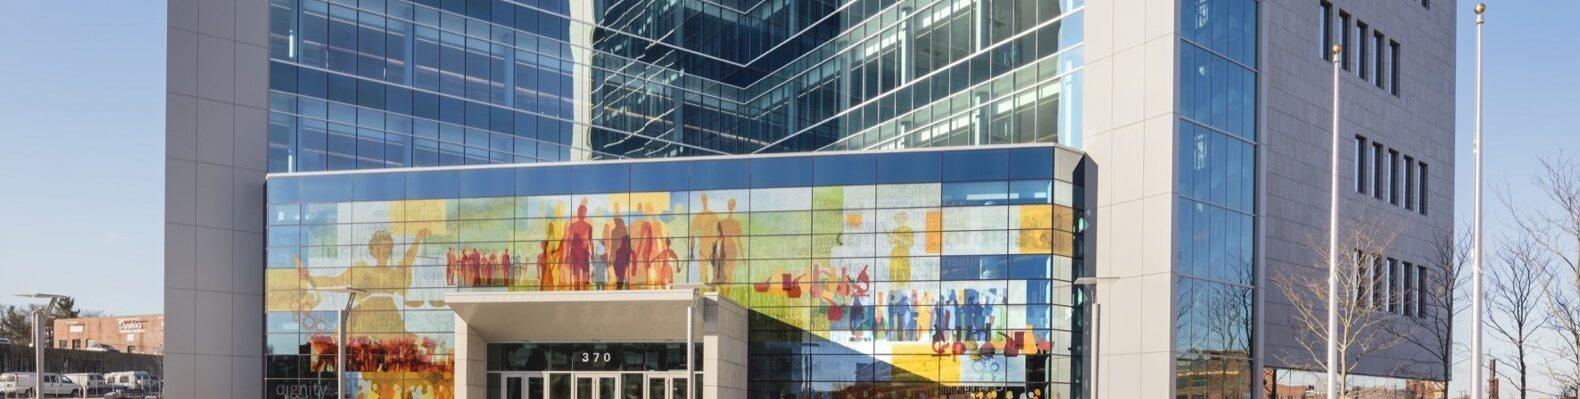 concrete and glass building with mural of people on the front